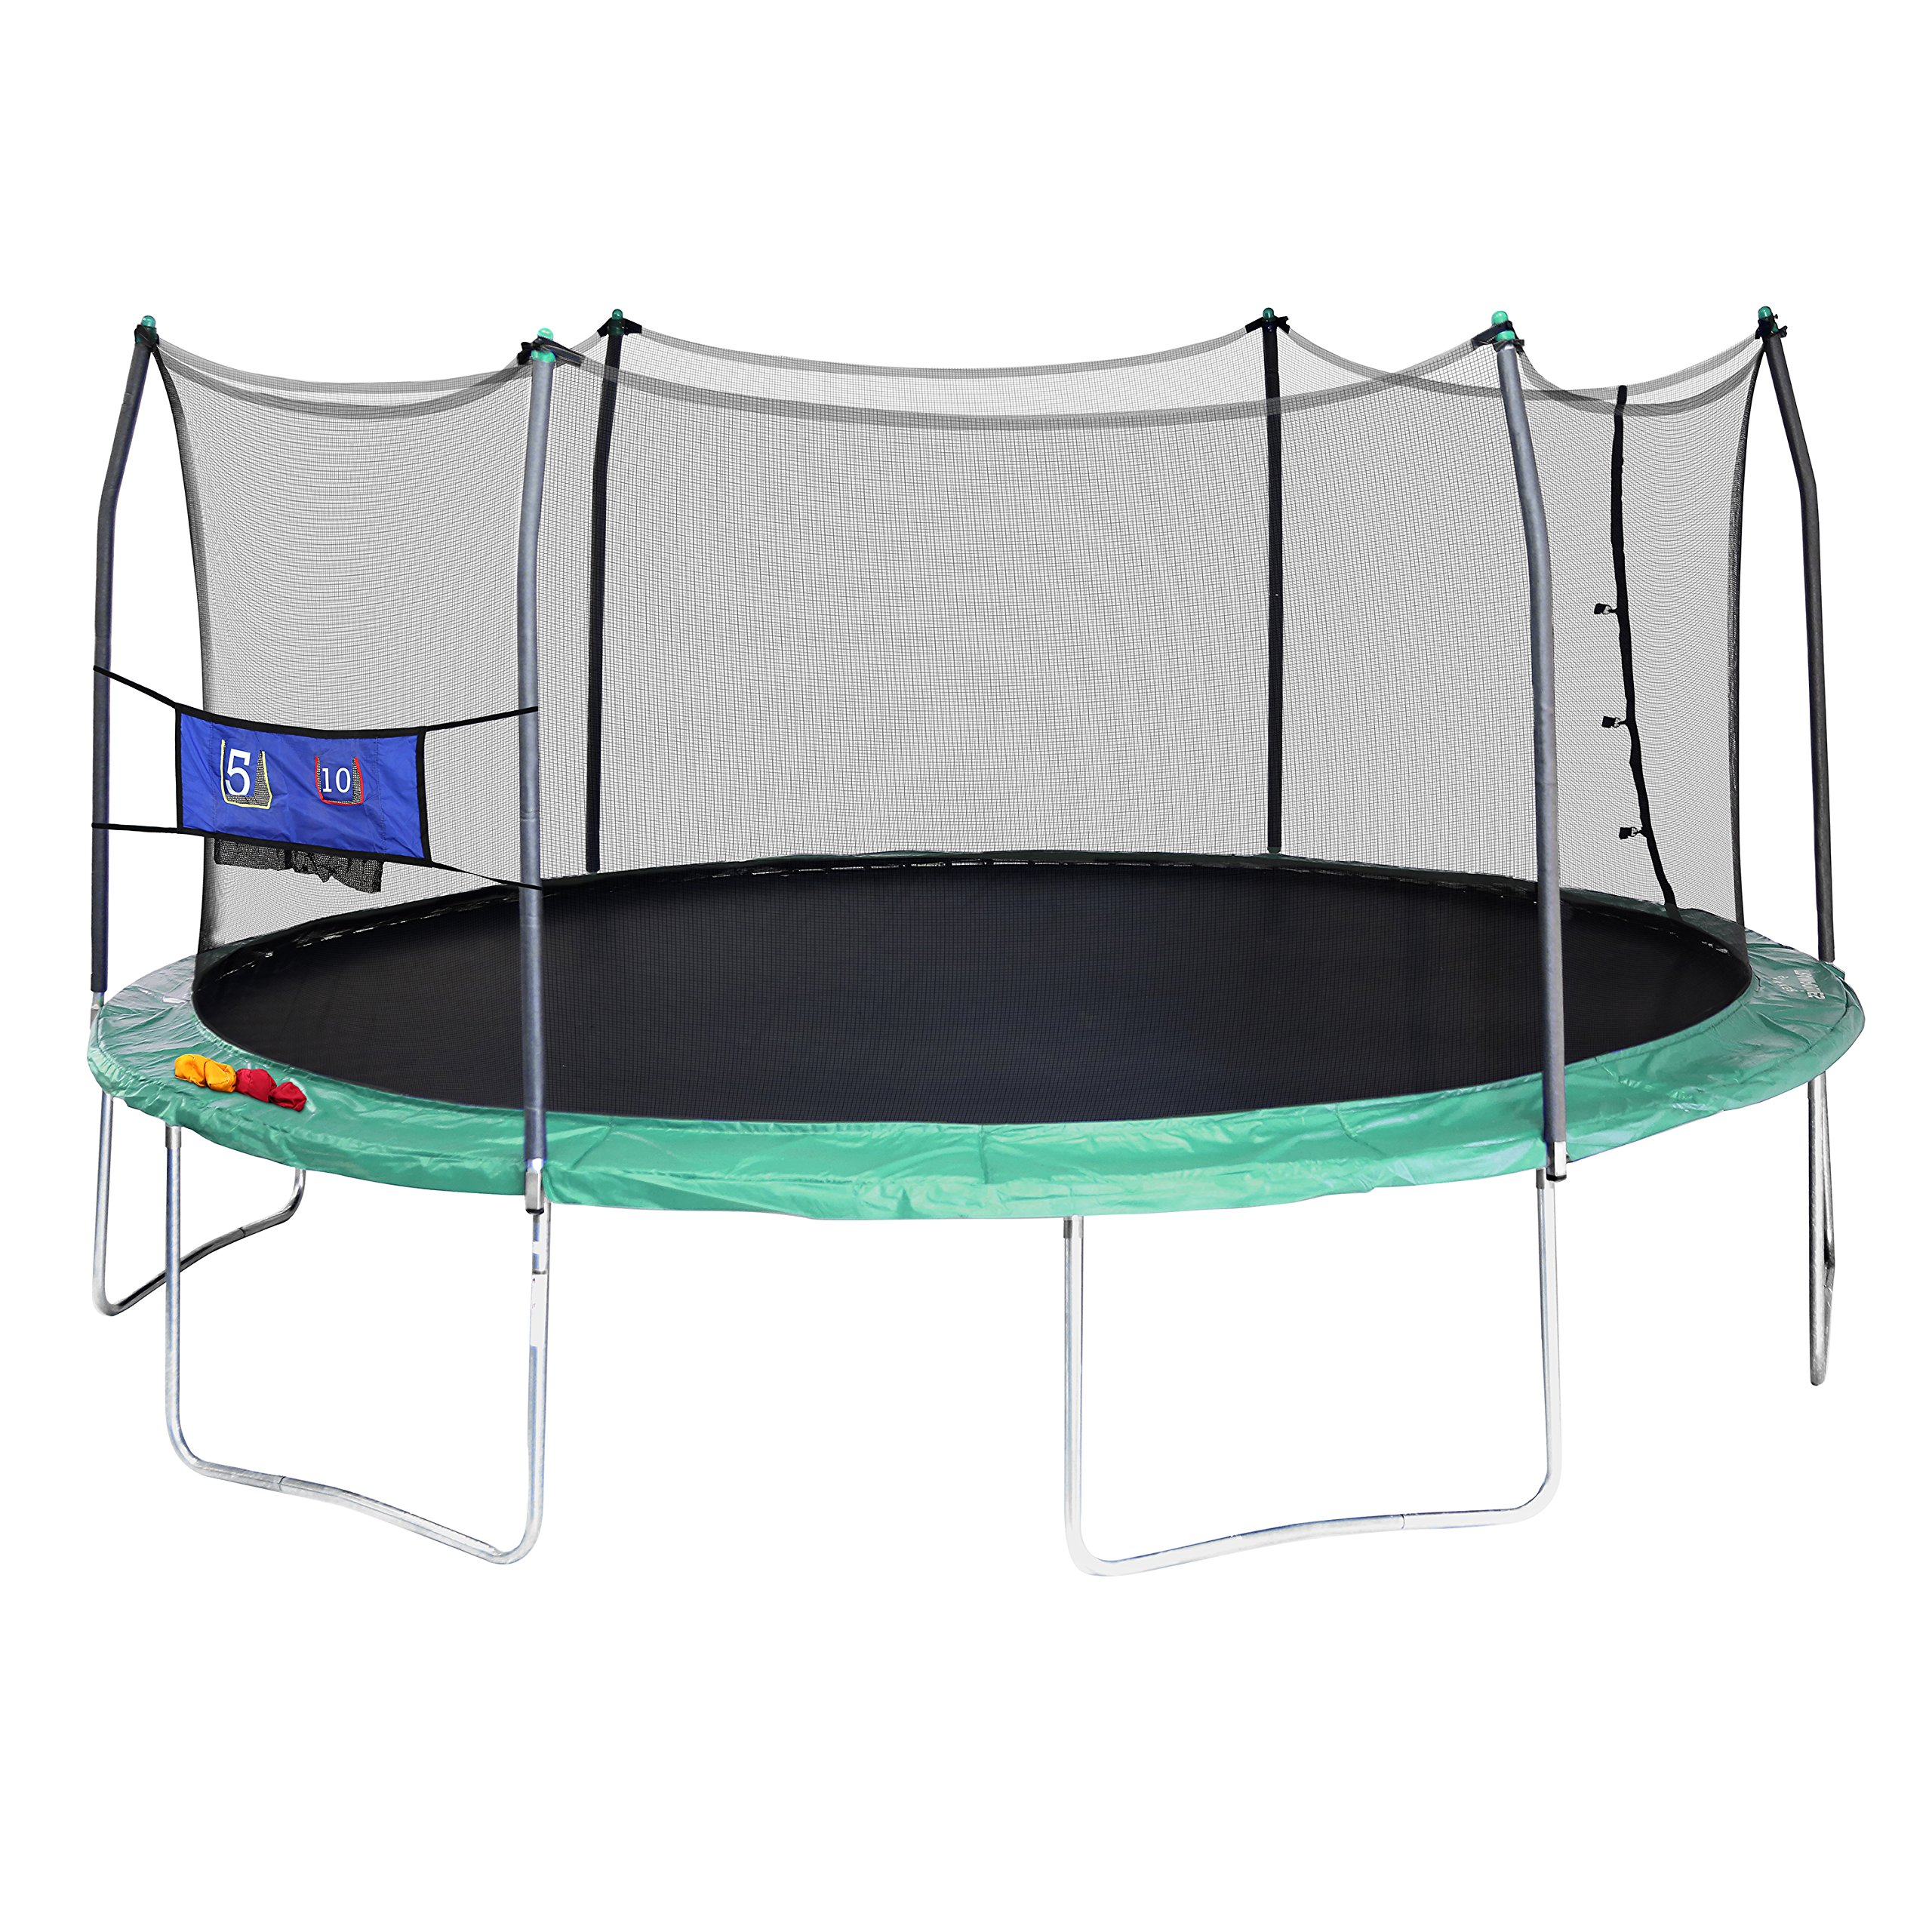 Skywalker Trampolines Oval Trampoline with Enclosure and Double Toss Game, Green, 16' by Skywalker Trampolines